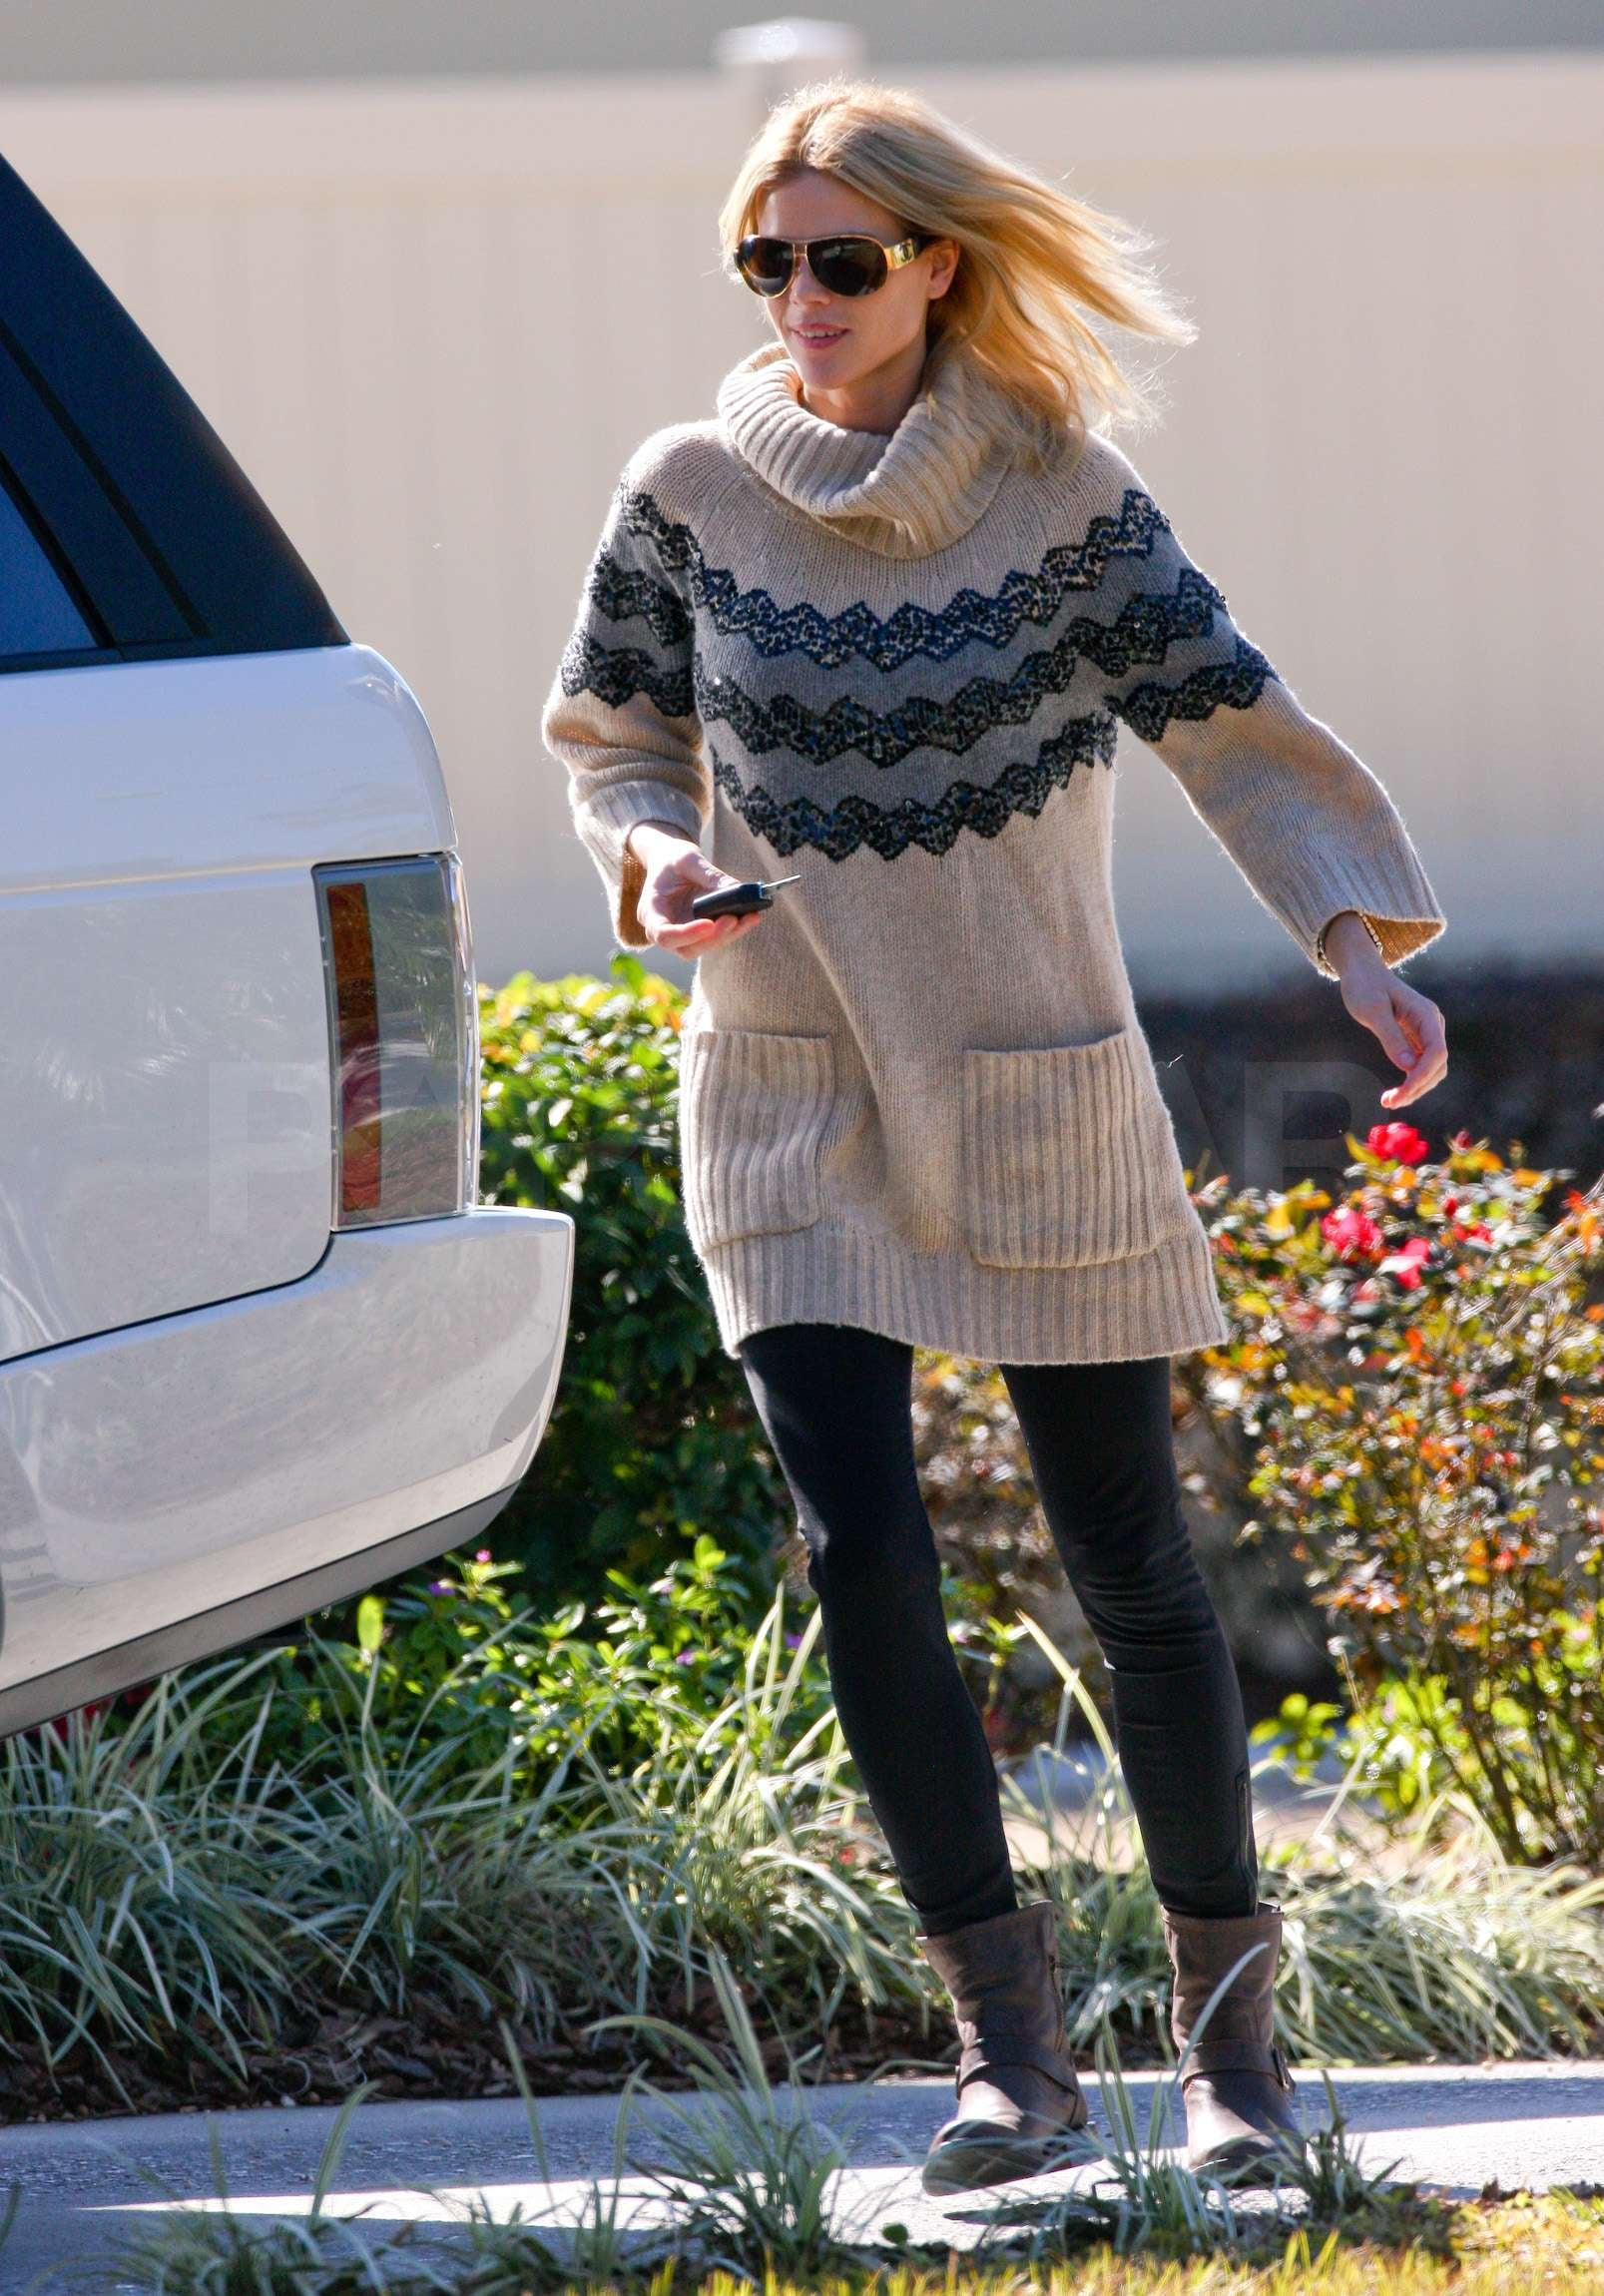 Photos Of Elin Nordegren Walking Outside Her Home In Florida Latest Tiger Woods News